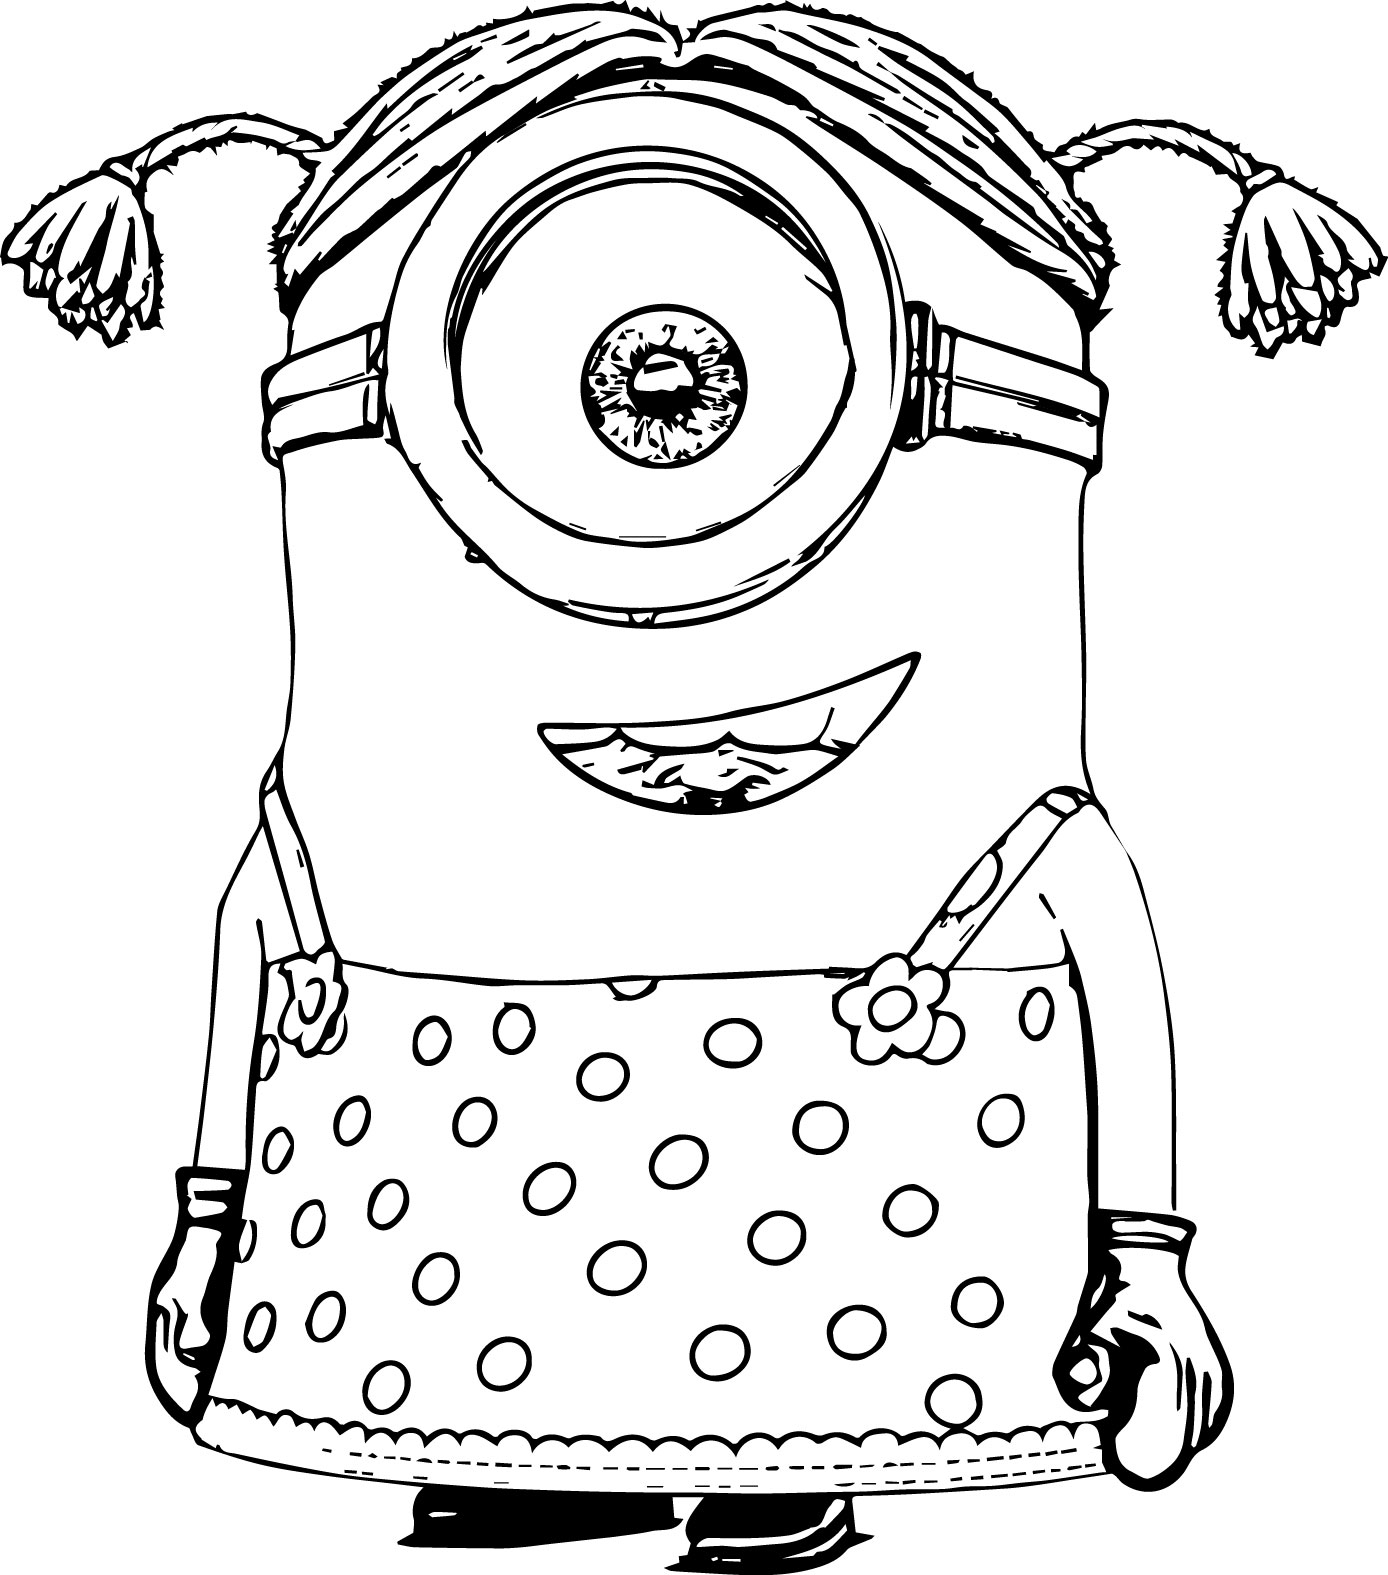 Evil Minion Coloring Pages At Getcolorings